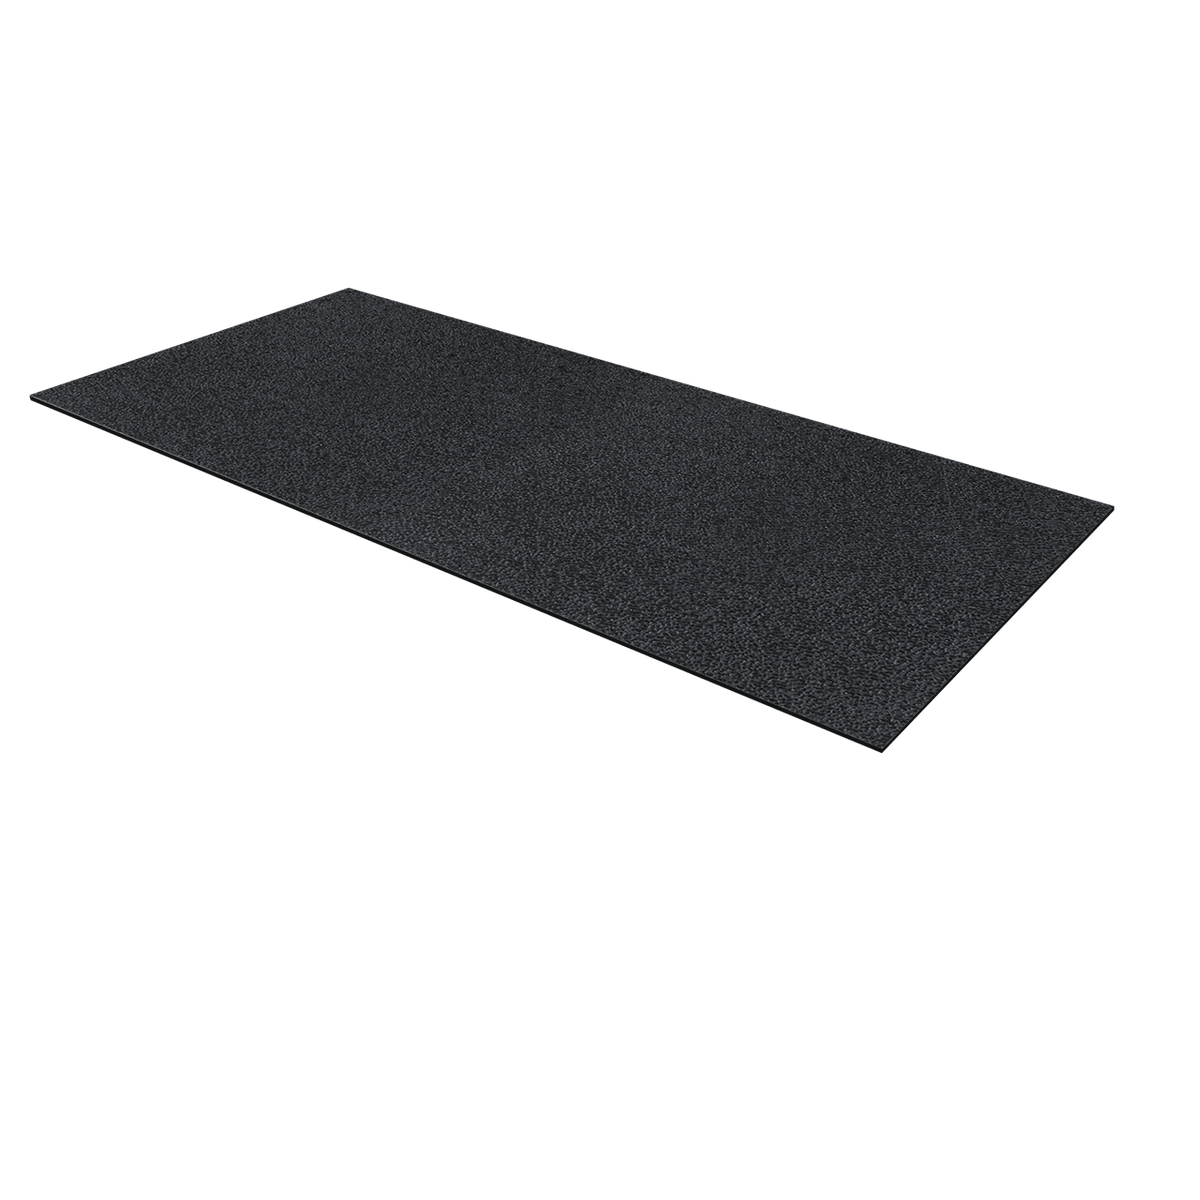 ABS Plastic Sheet - Black